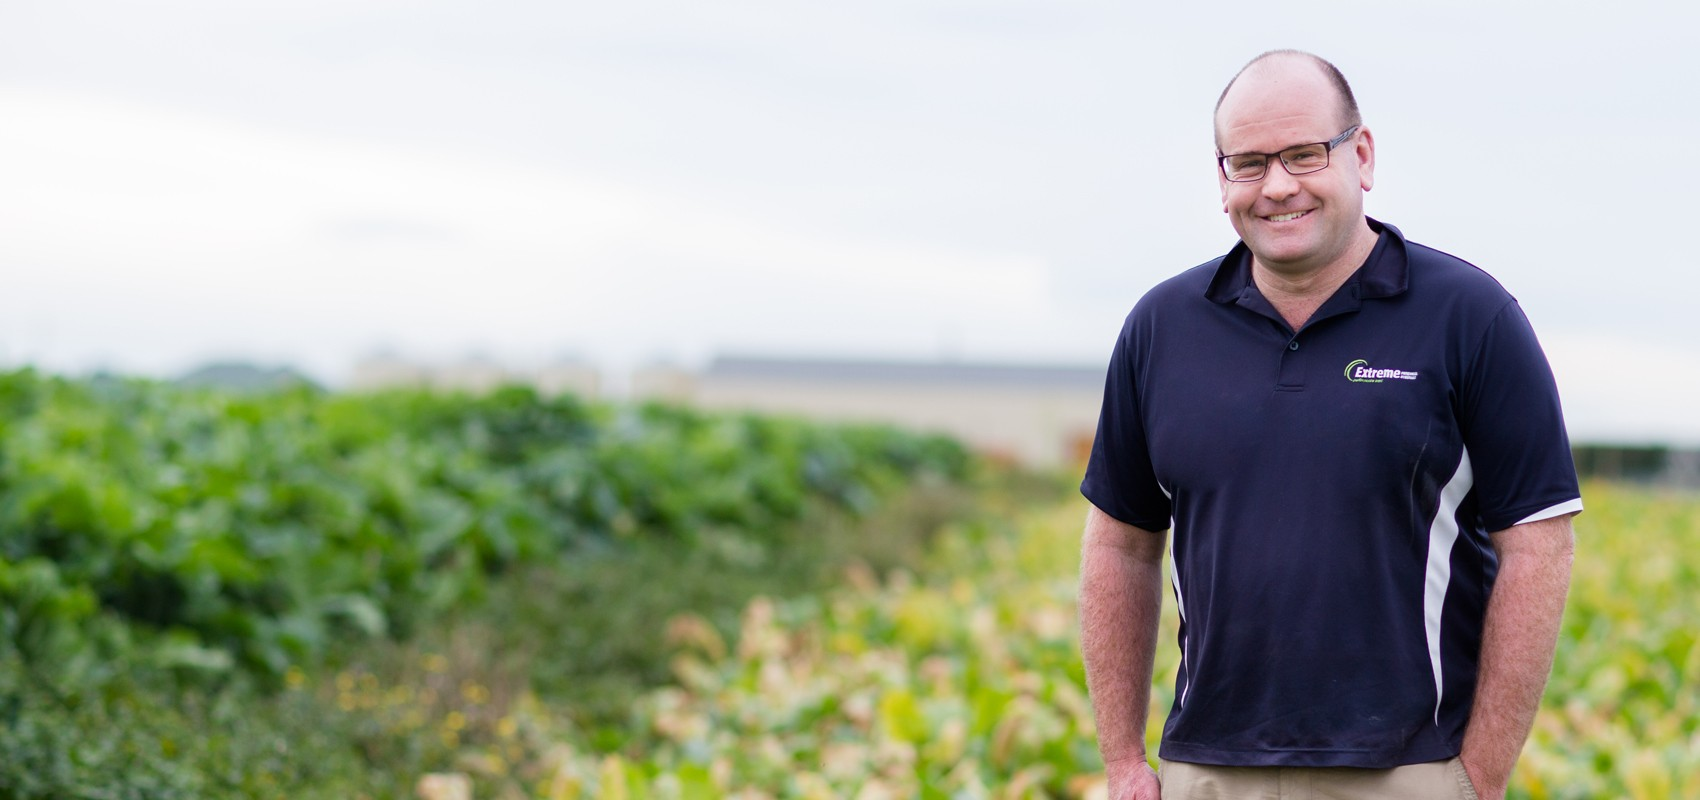 Andy Dumbleton, PGG Wrightsons Seeds